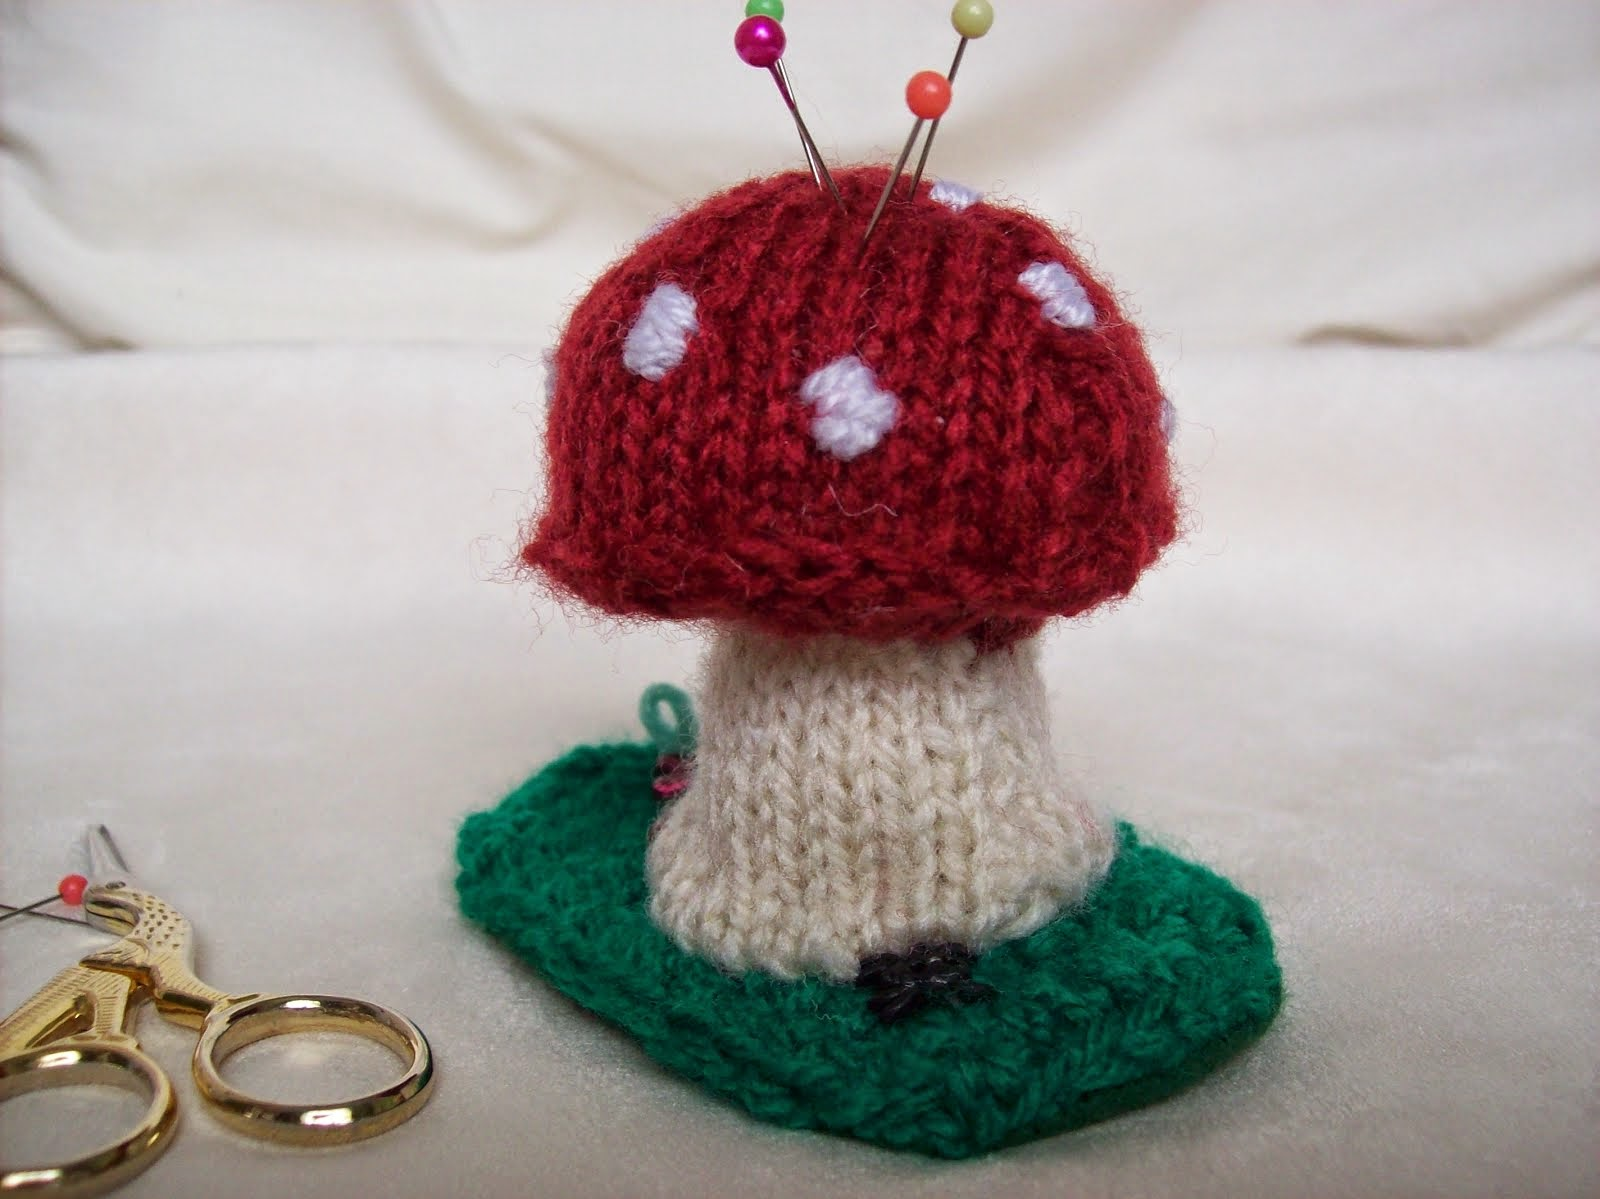 KNITTED TOADSTOOL PINCUSHION